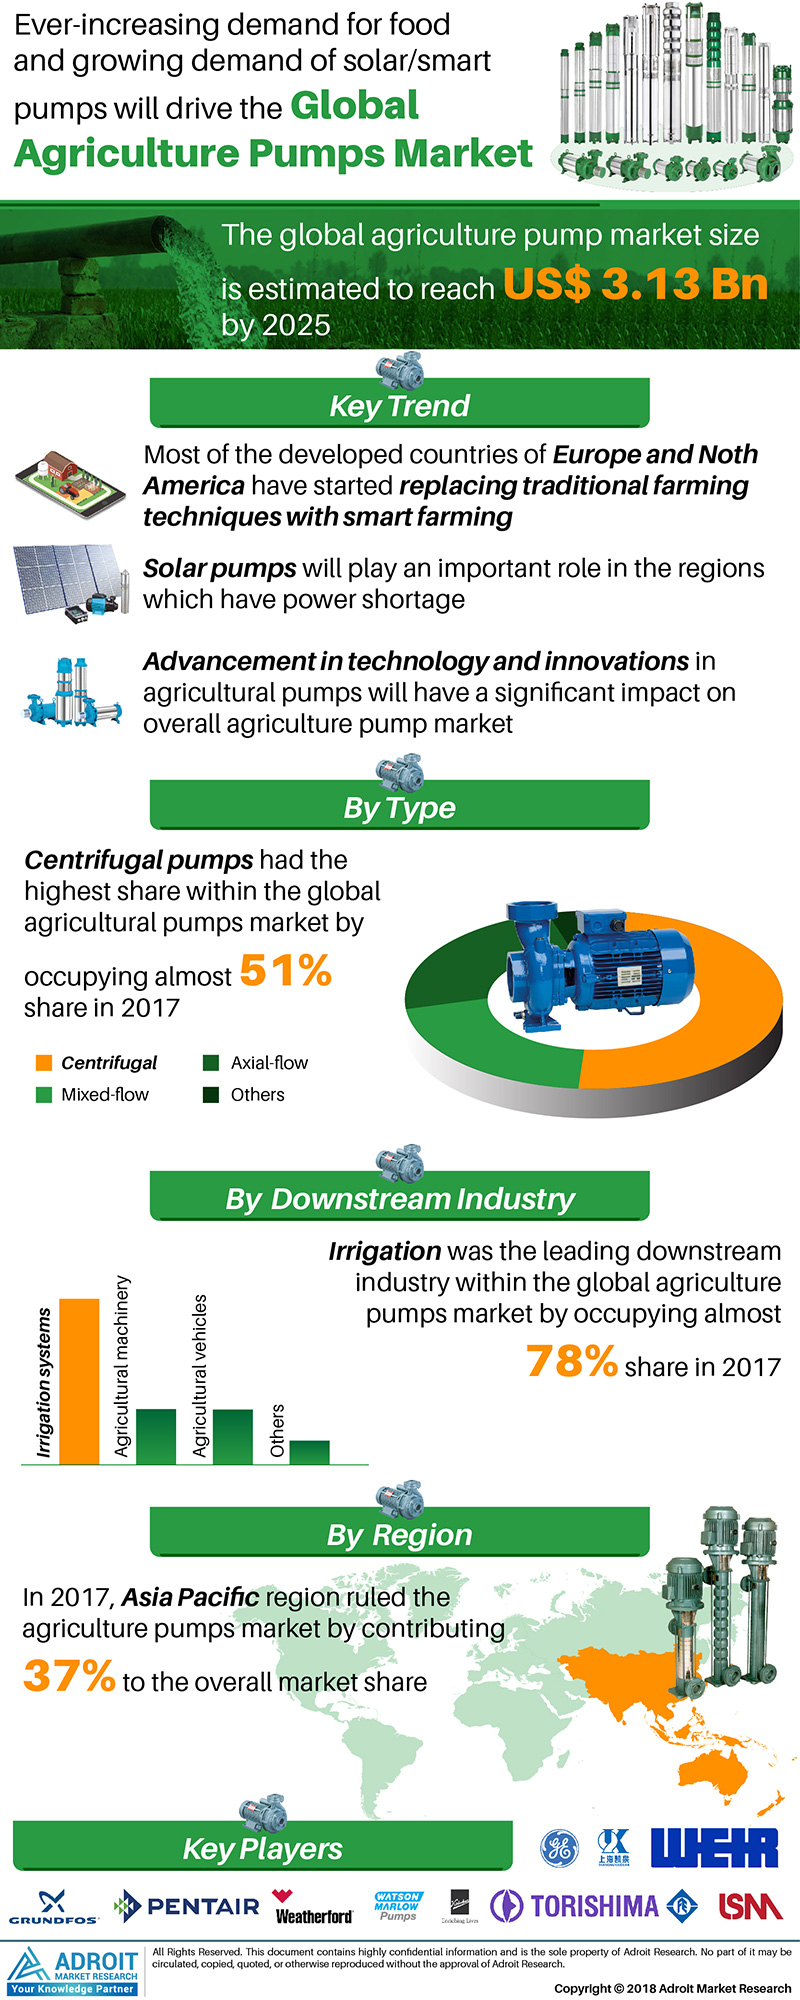 Global Agriculture Pumps Market 2019-2025 – Analysis by Key Players, Top Region, Types, Application, Demand, Cost Analysis, Develop Business Strategies & Industry Research Report 4